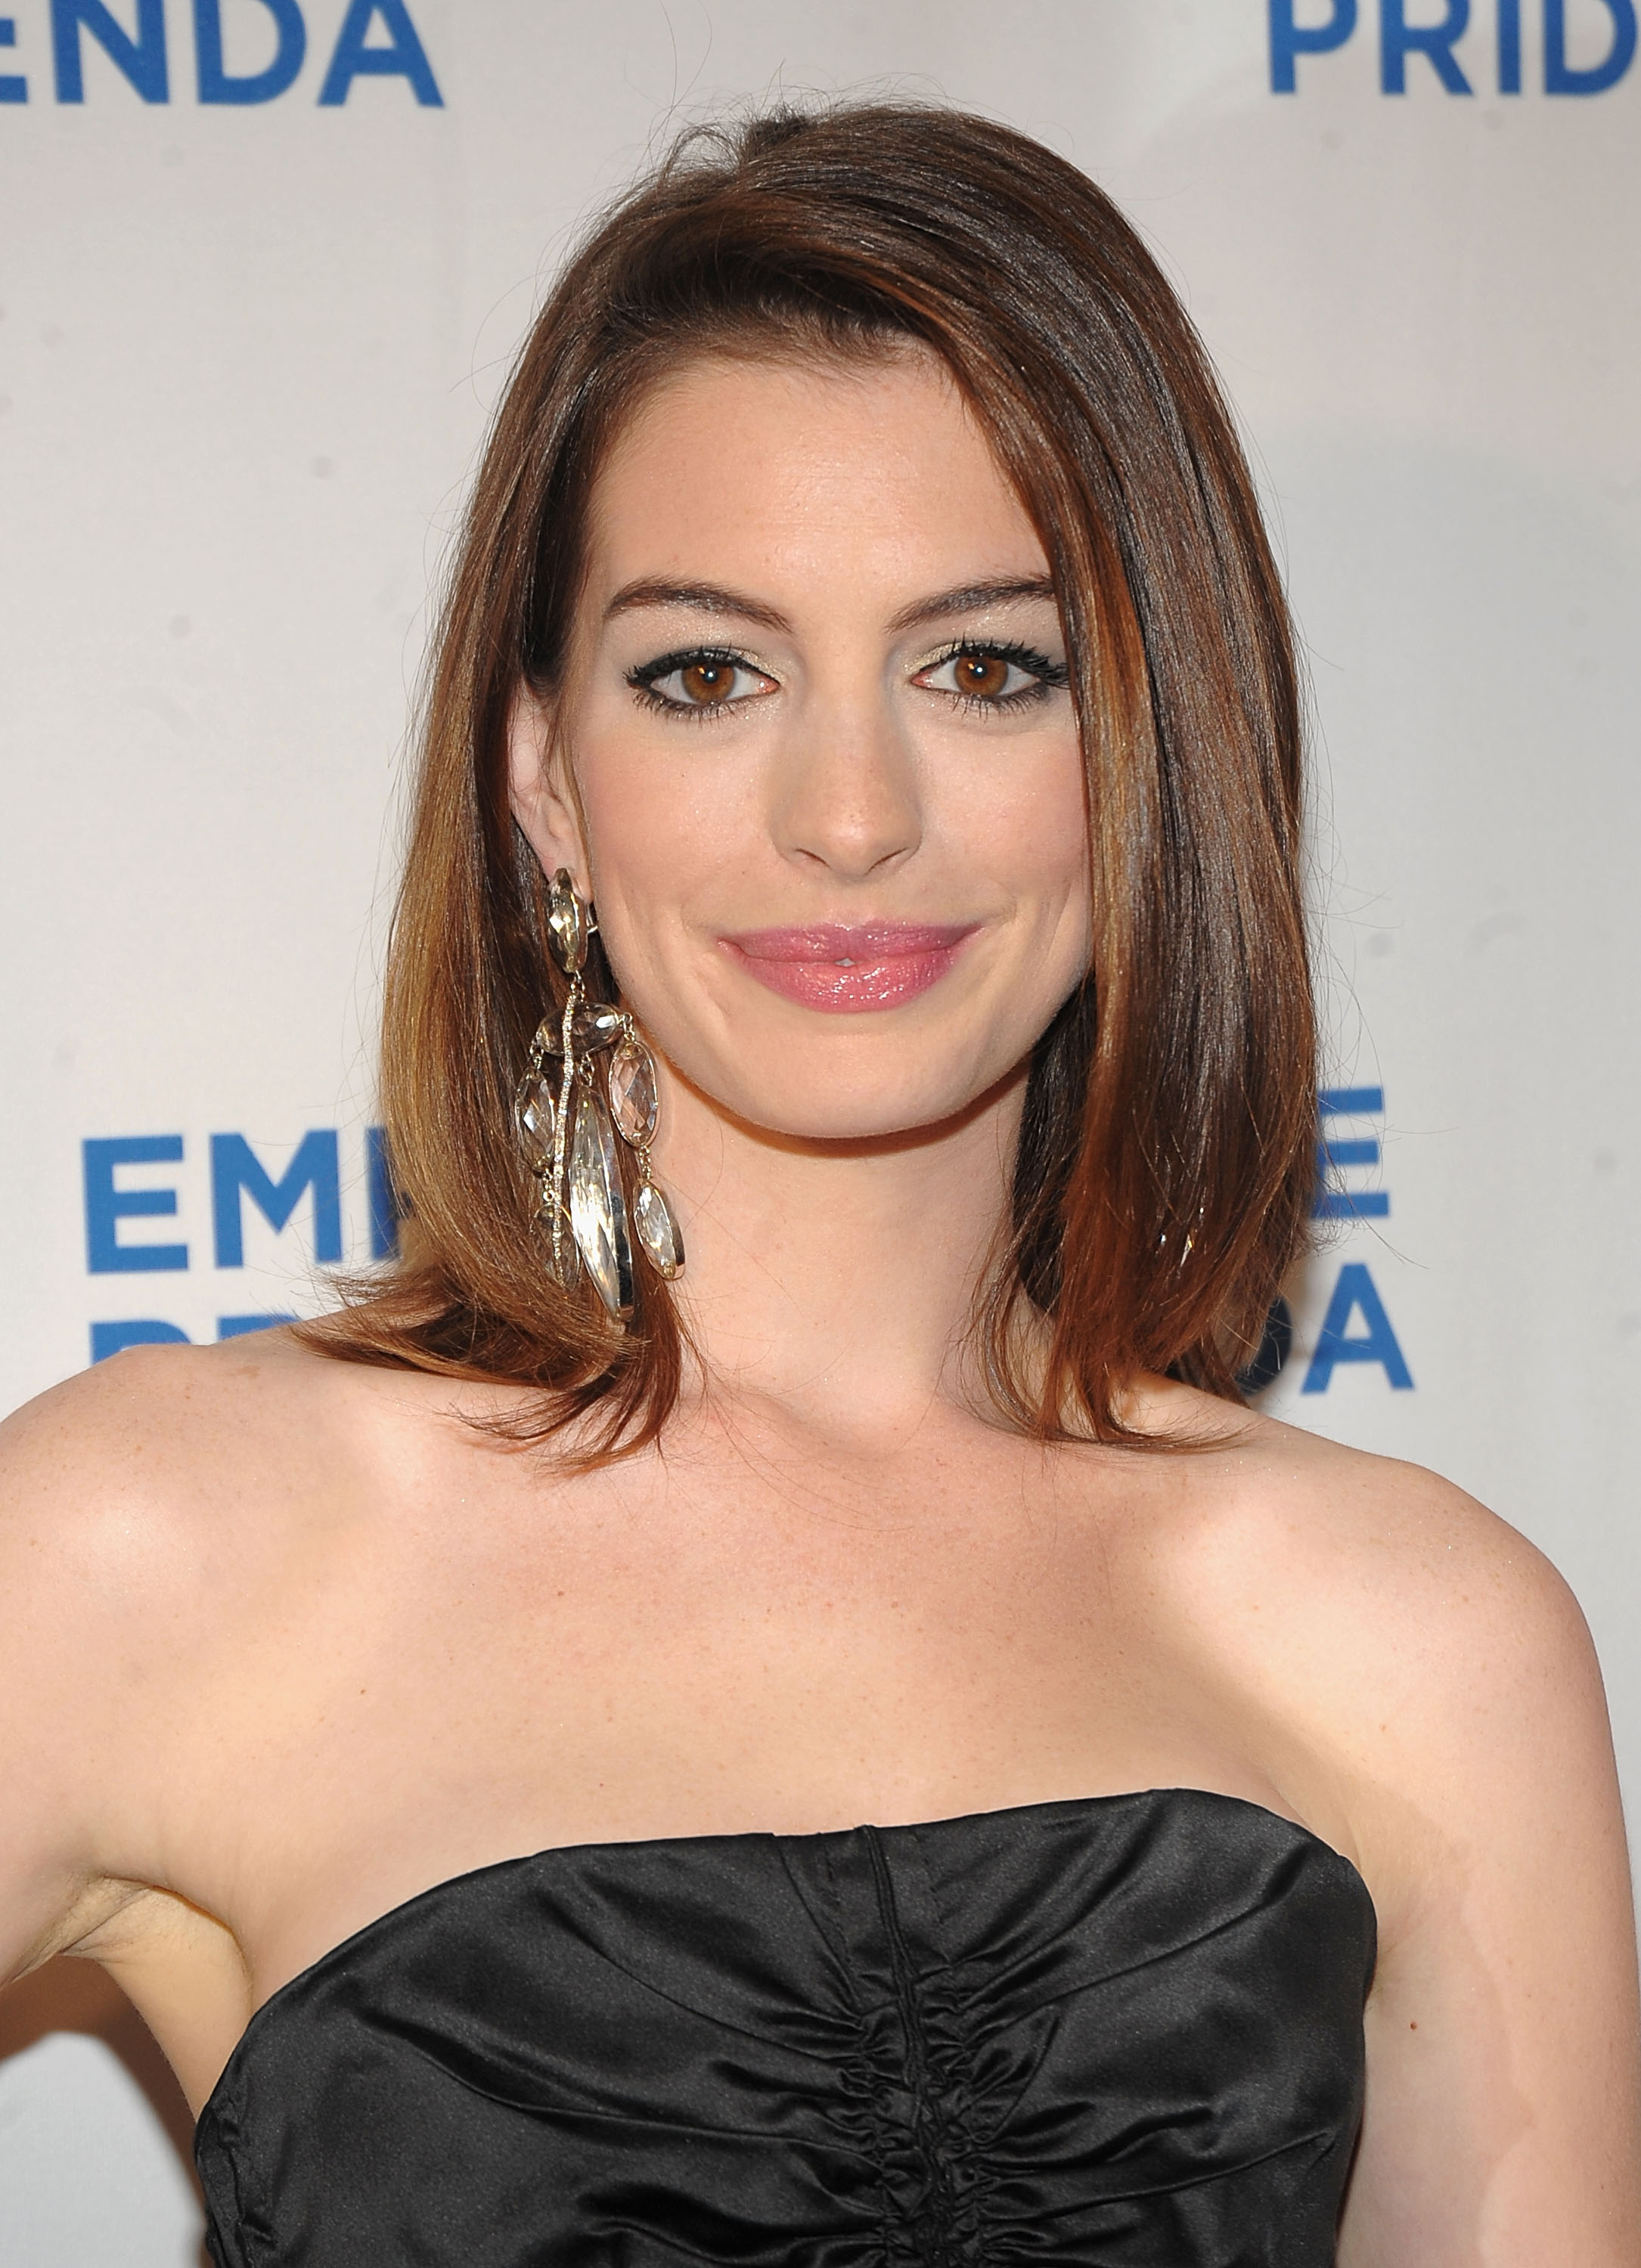 Photos of Anne Hathaway